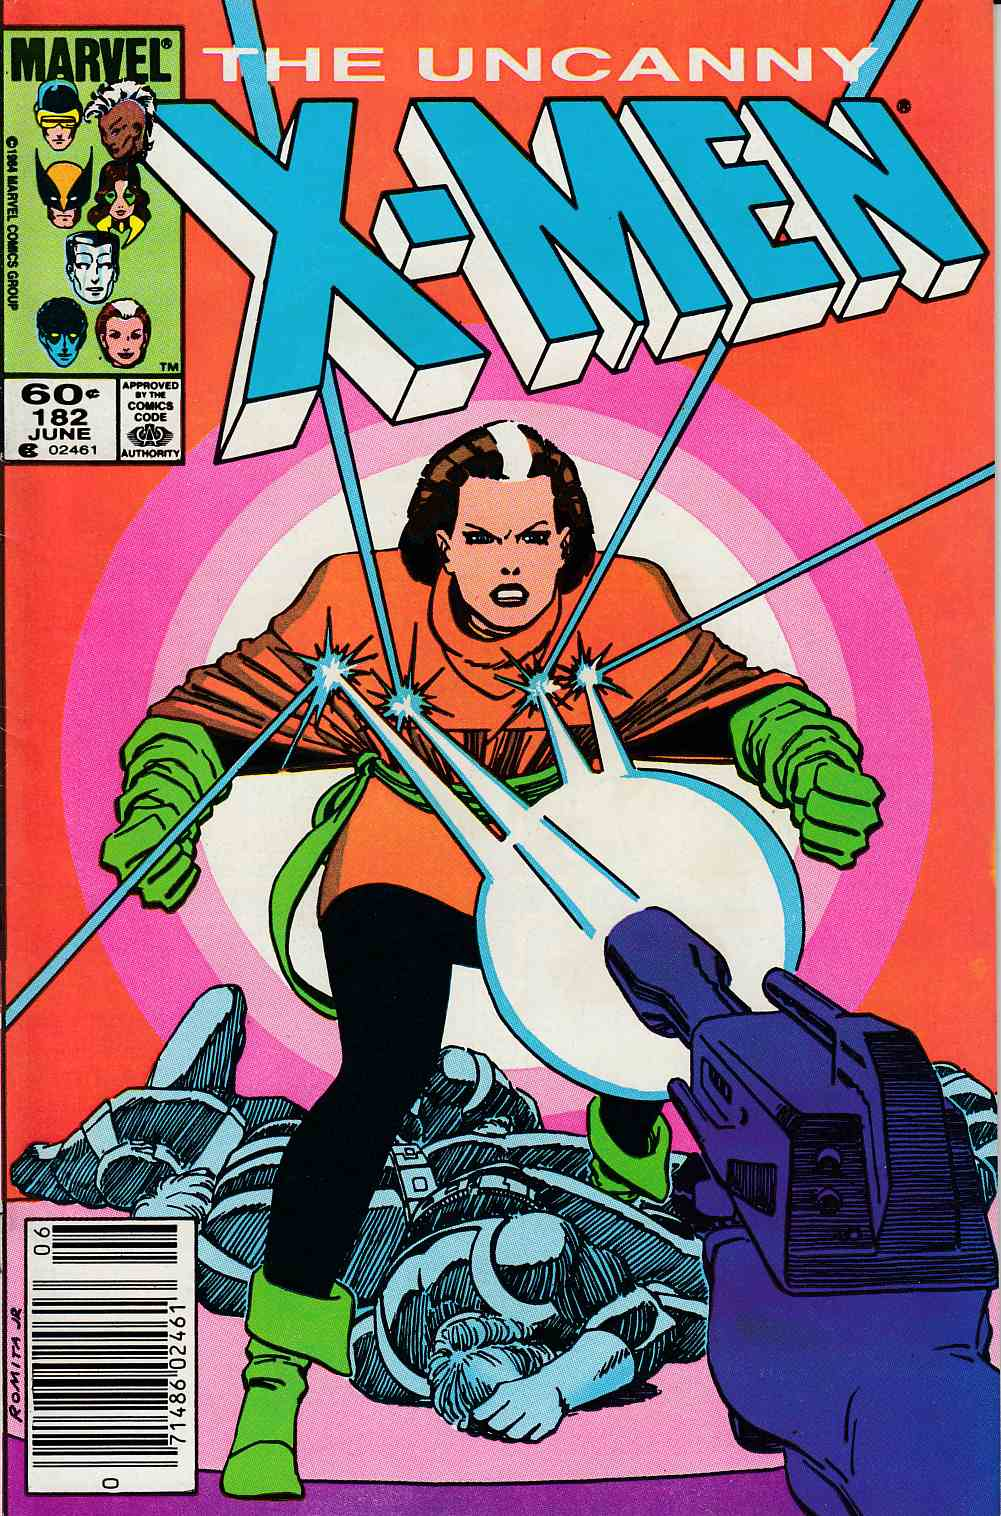 Uncanny X-Men #182 Newsstand Edition Fine (6.0) [Marvel Comic]